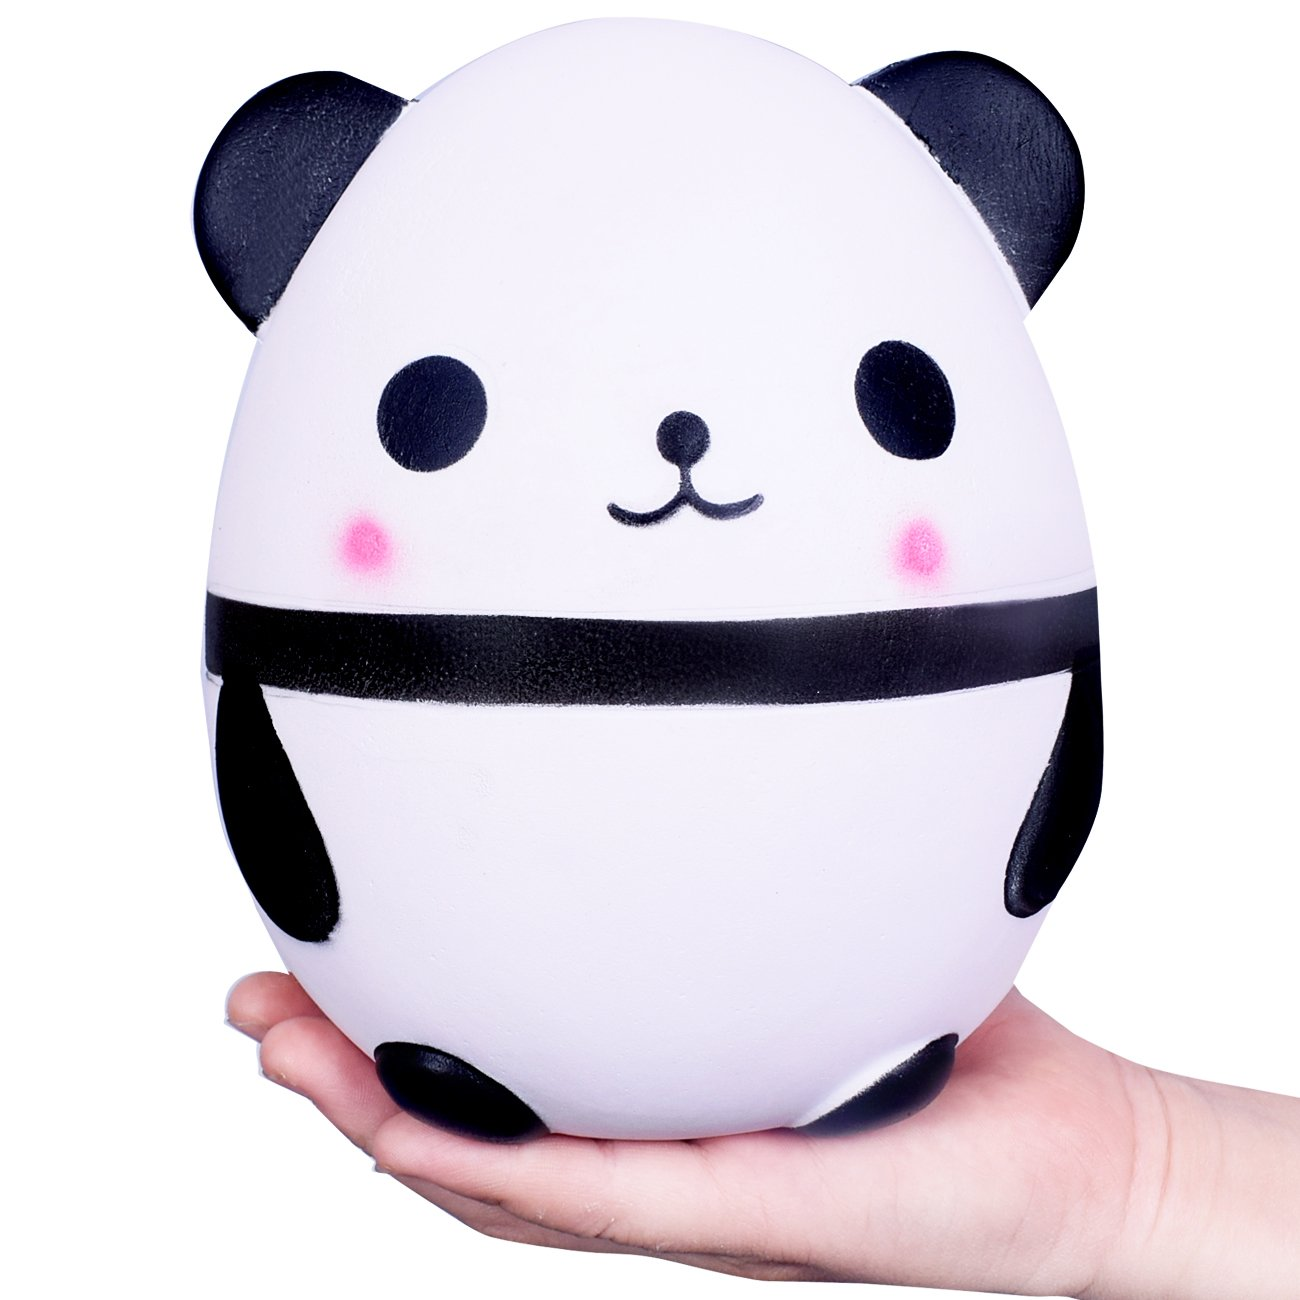 WeYingLe Squishy Jumbo Slow Rising Squishies Panda Car Star Kawaii Squishies Cream Scented Toys for Kids and Adults, Lovely Stress Relief Toy. Big size Panda (6 inch panda) BZ